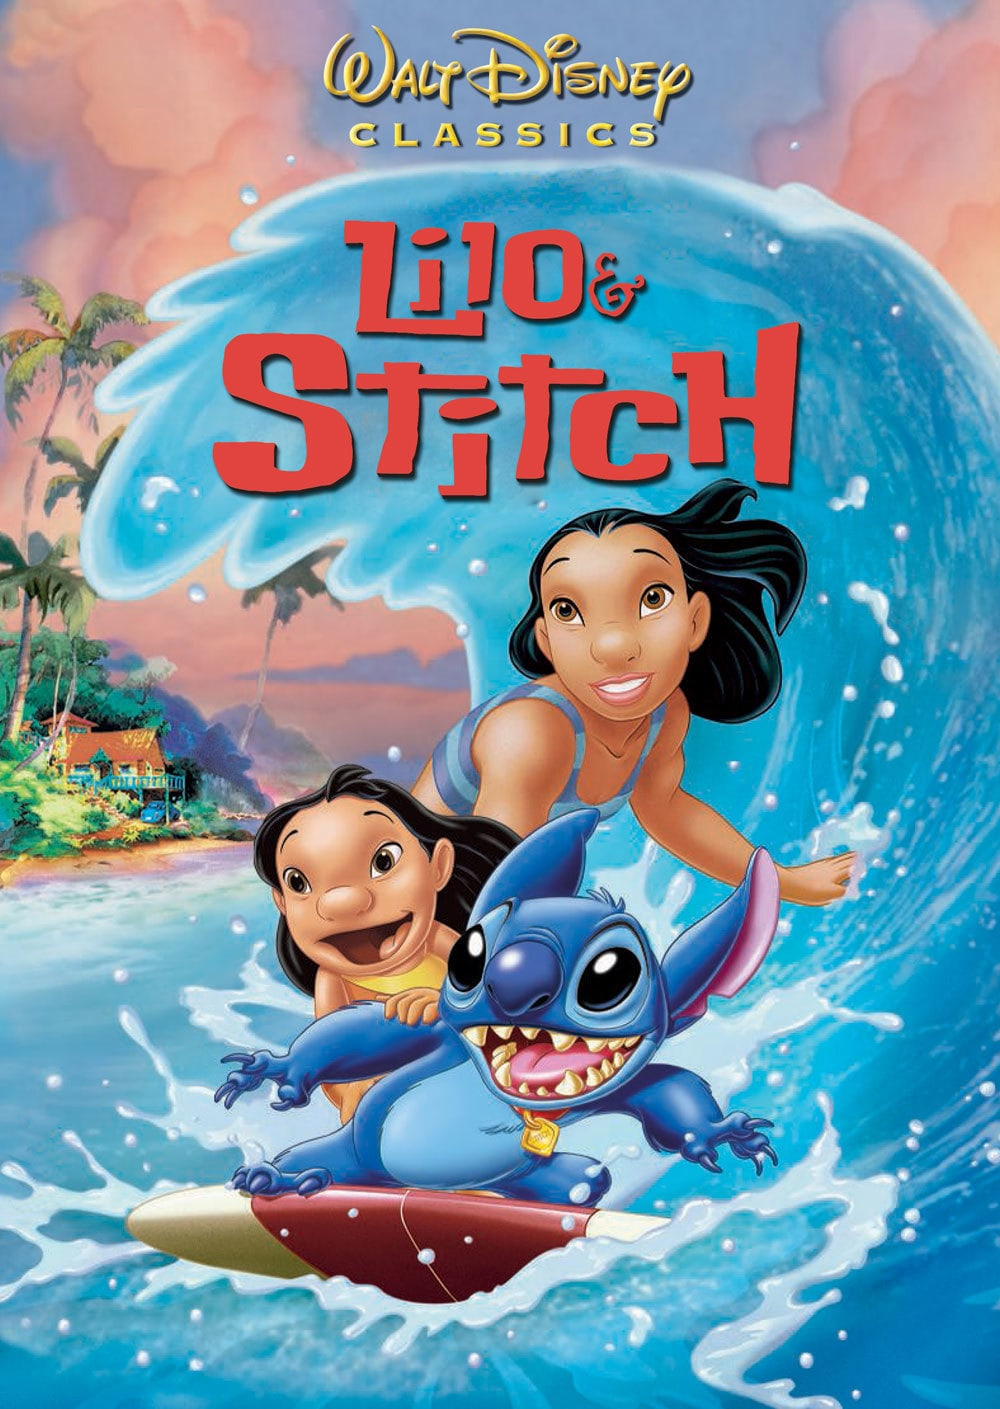 Image result for lilo and stitch movie poster disney""